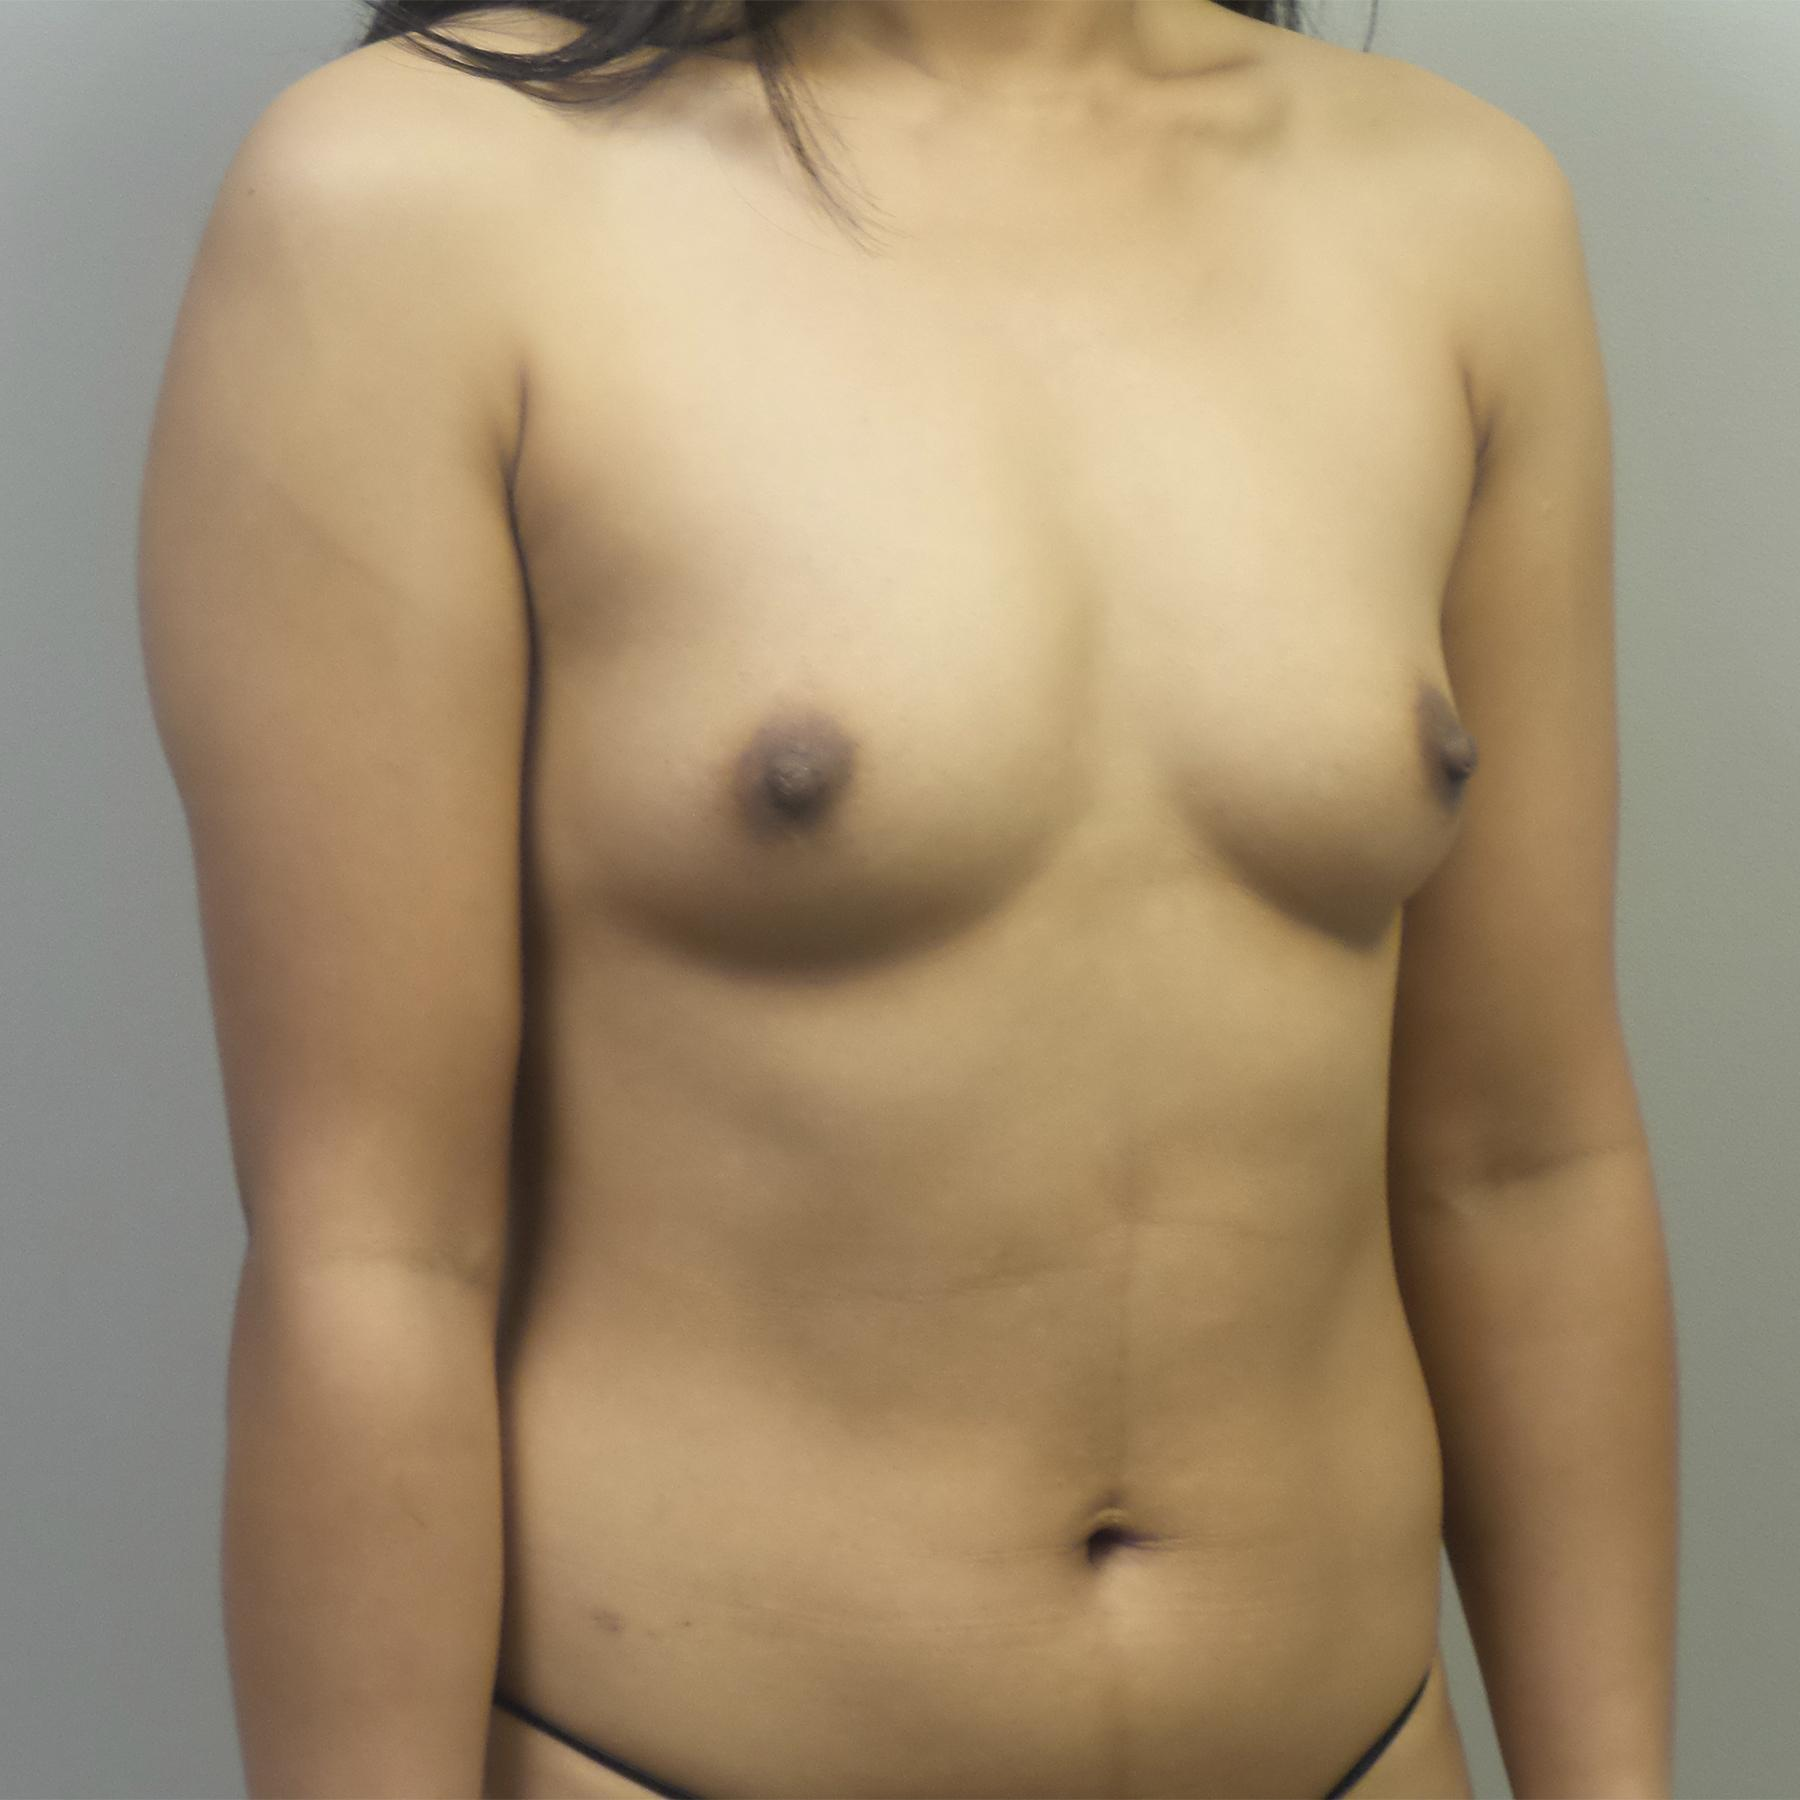 A Before photo of a Breast Augmentation Plastic Surgery by Dr. Craig Jonov in Seattle, Bellevue, and Kirkland